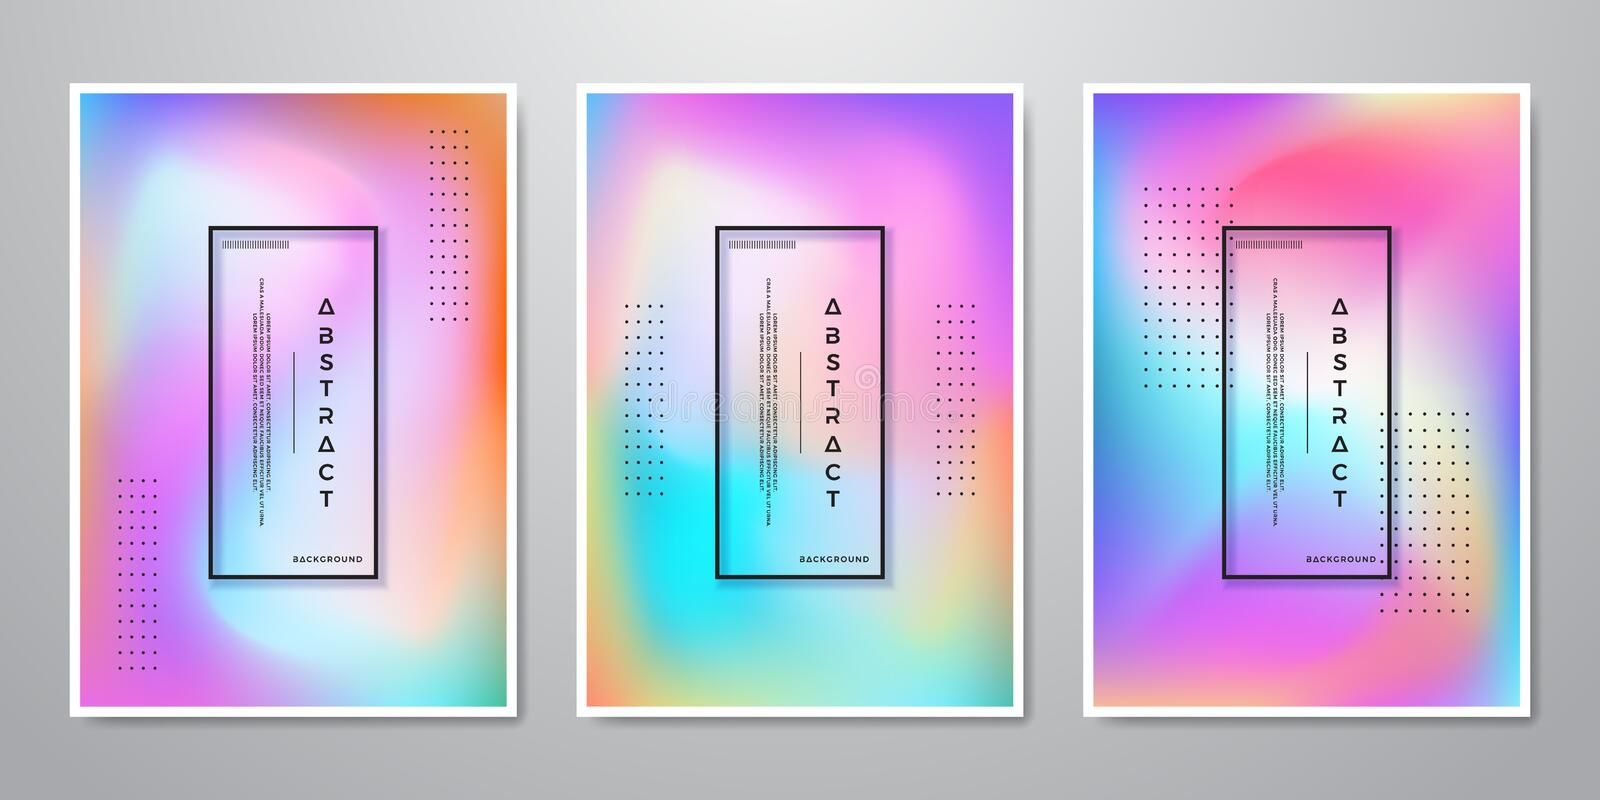 Abstract Trendy Gradient Shapes Holographic Backgrounds for Mobile Screen, Advertising, Backdrop, Brochure, Cover, Flyer, stock illustration